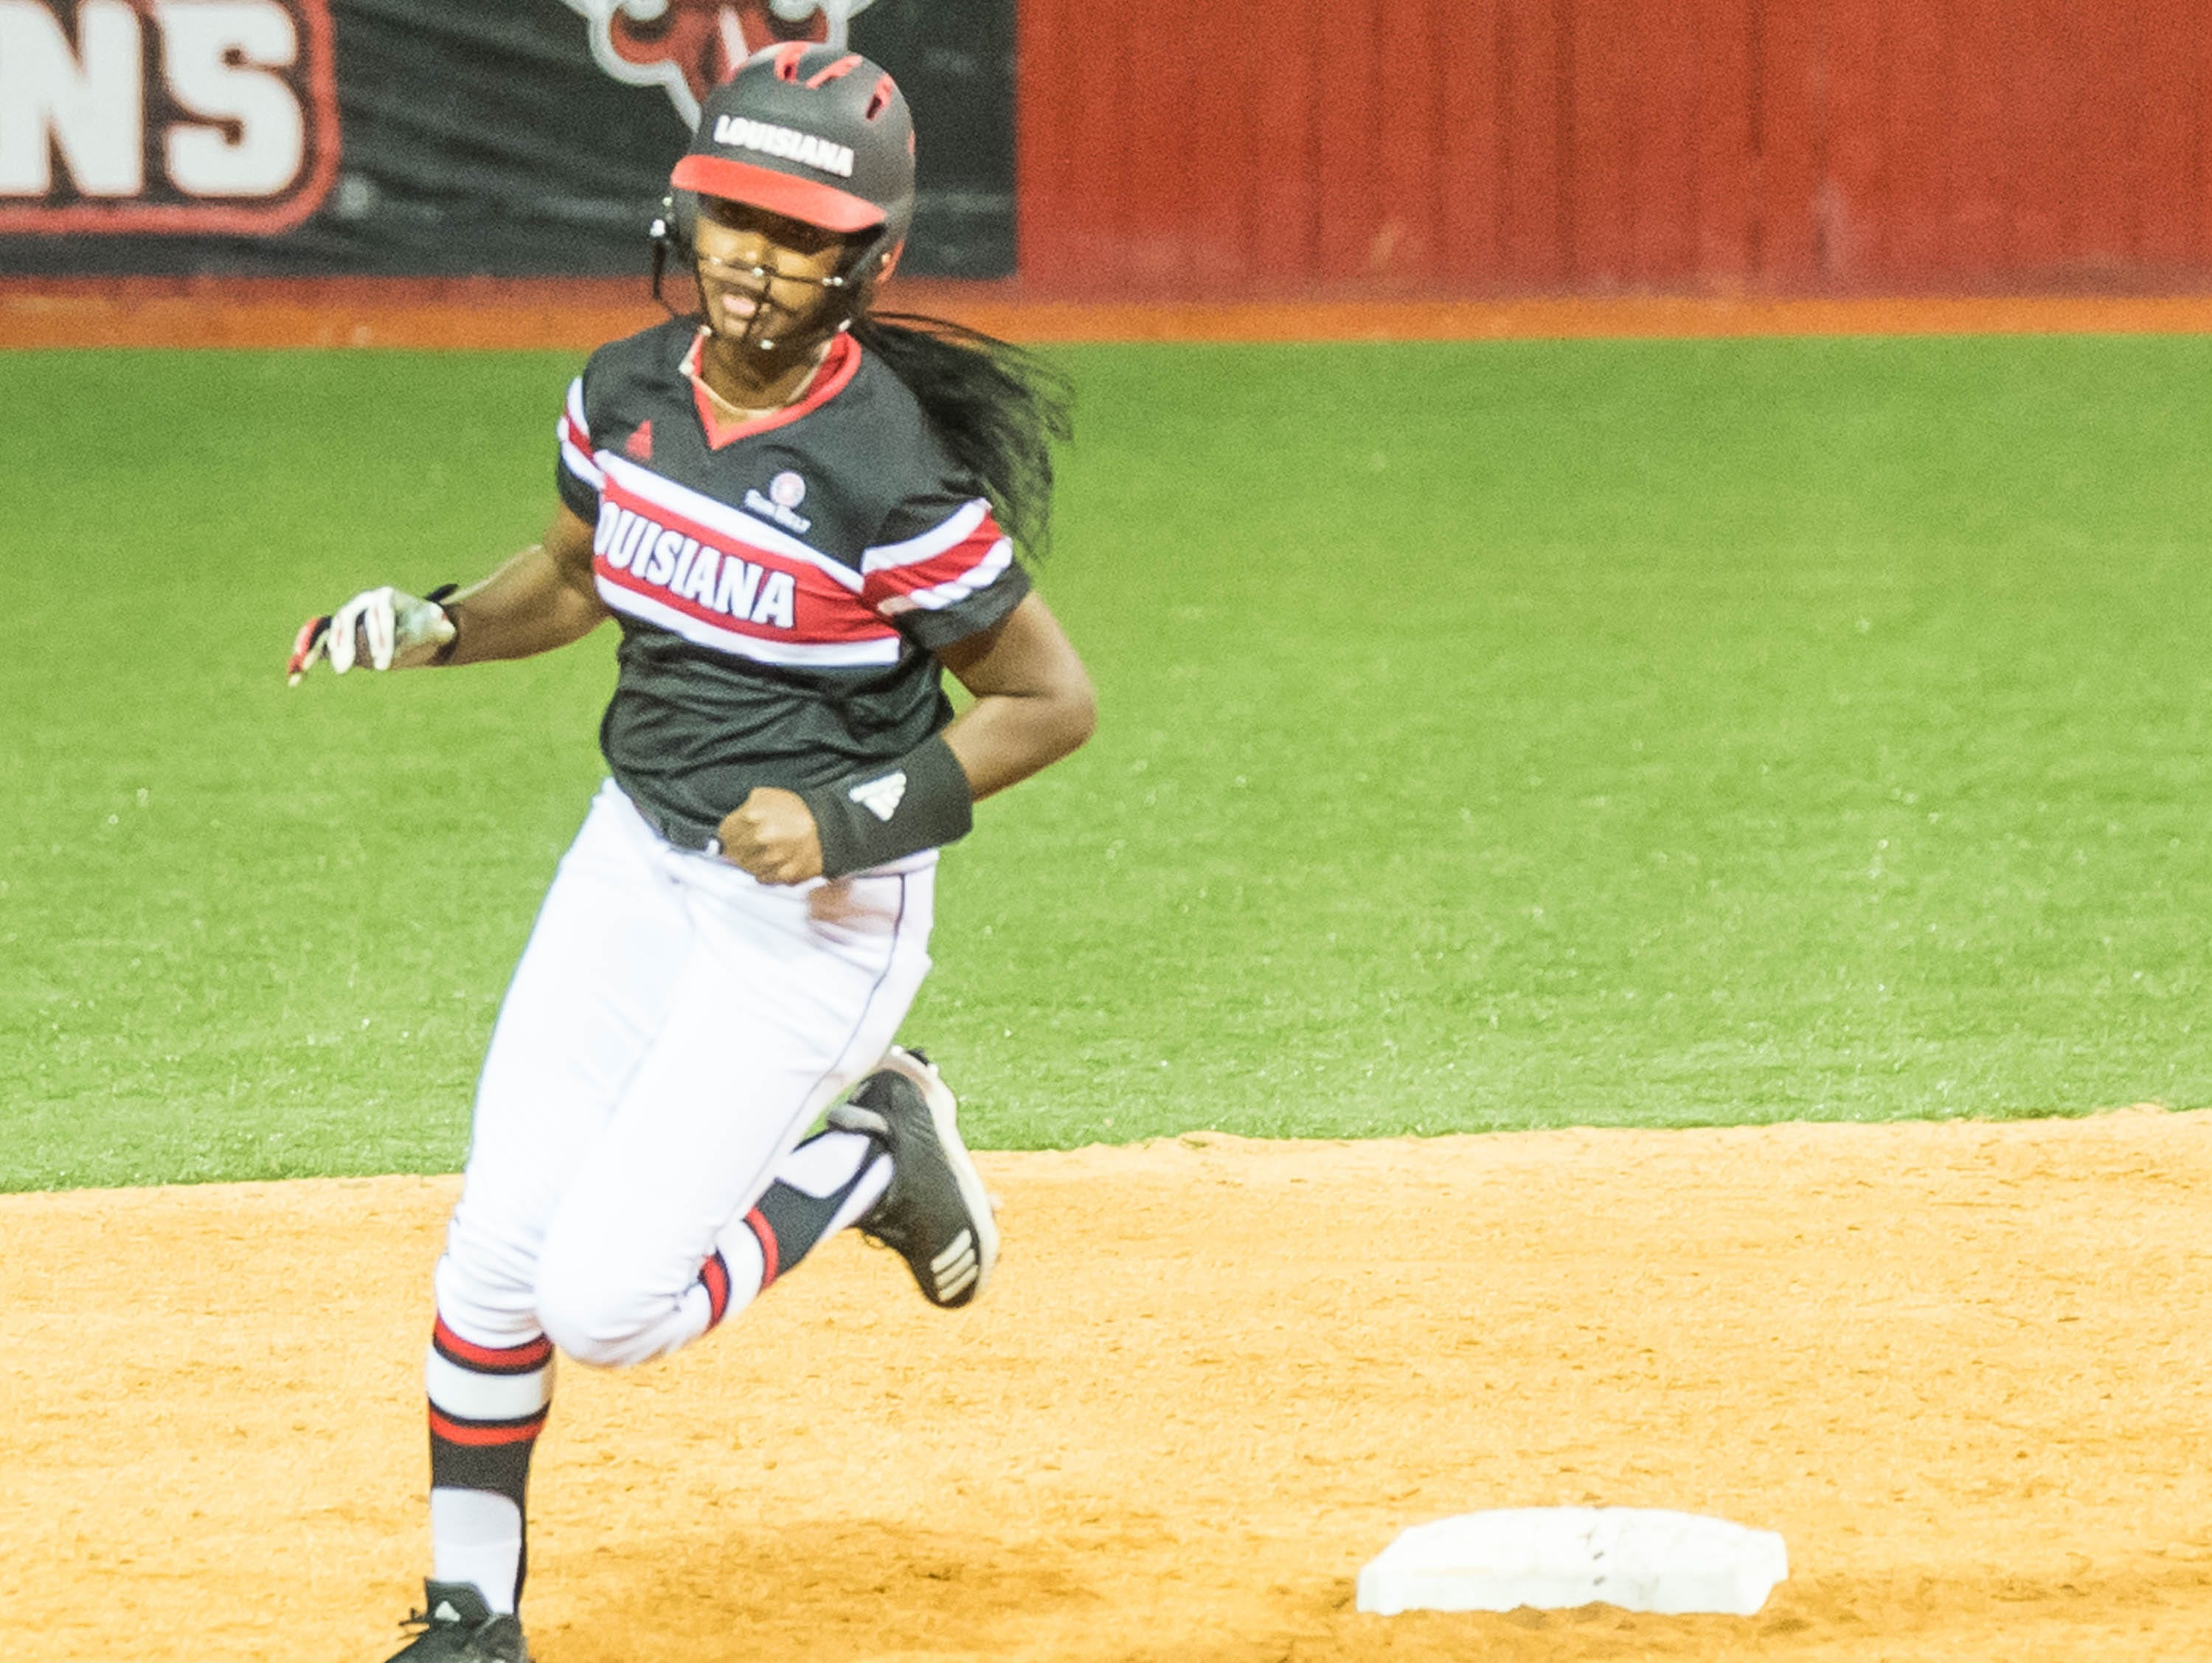 UL's Raina O'Neal rounds the bases after hitting the Ragin' Cajuns first home run of the season as the Ragin' Cajuns play Fordham in the opening game of the 2019 softball season at Lamson Park on Thursday, Feb. 7, 2019.